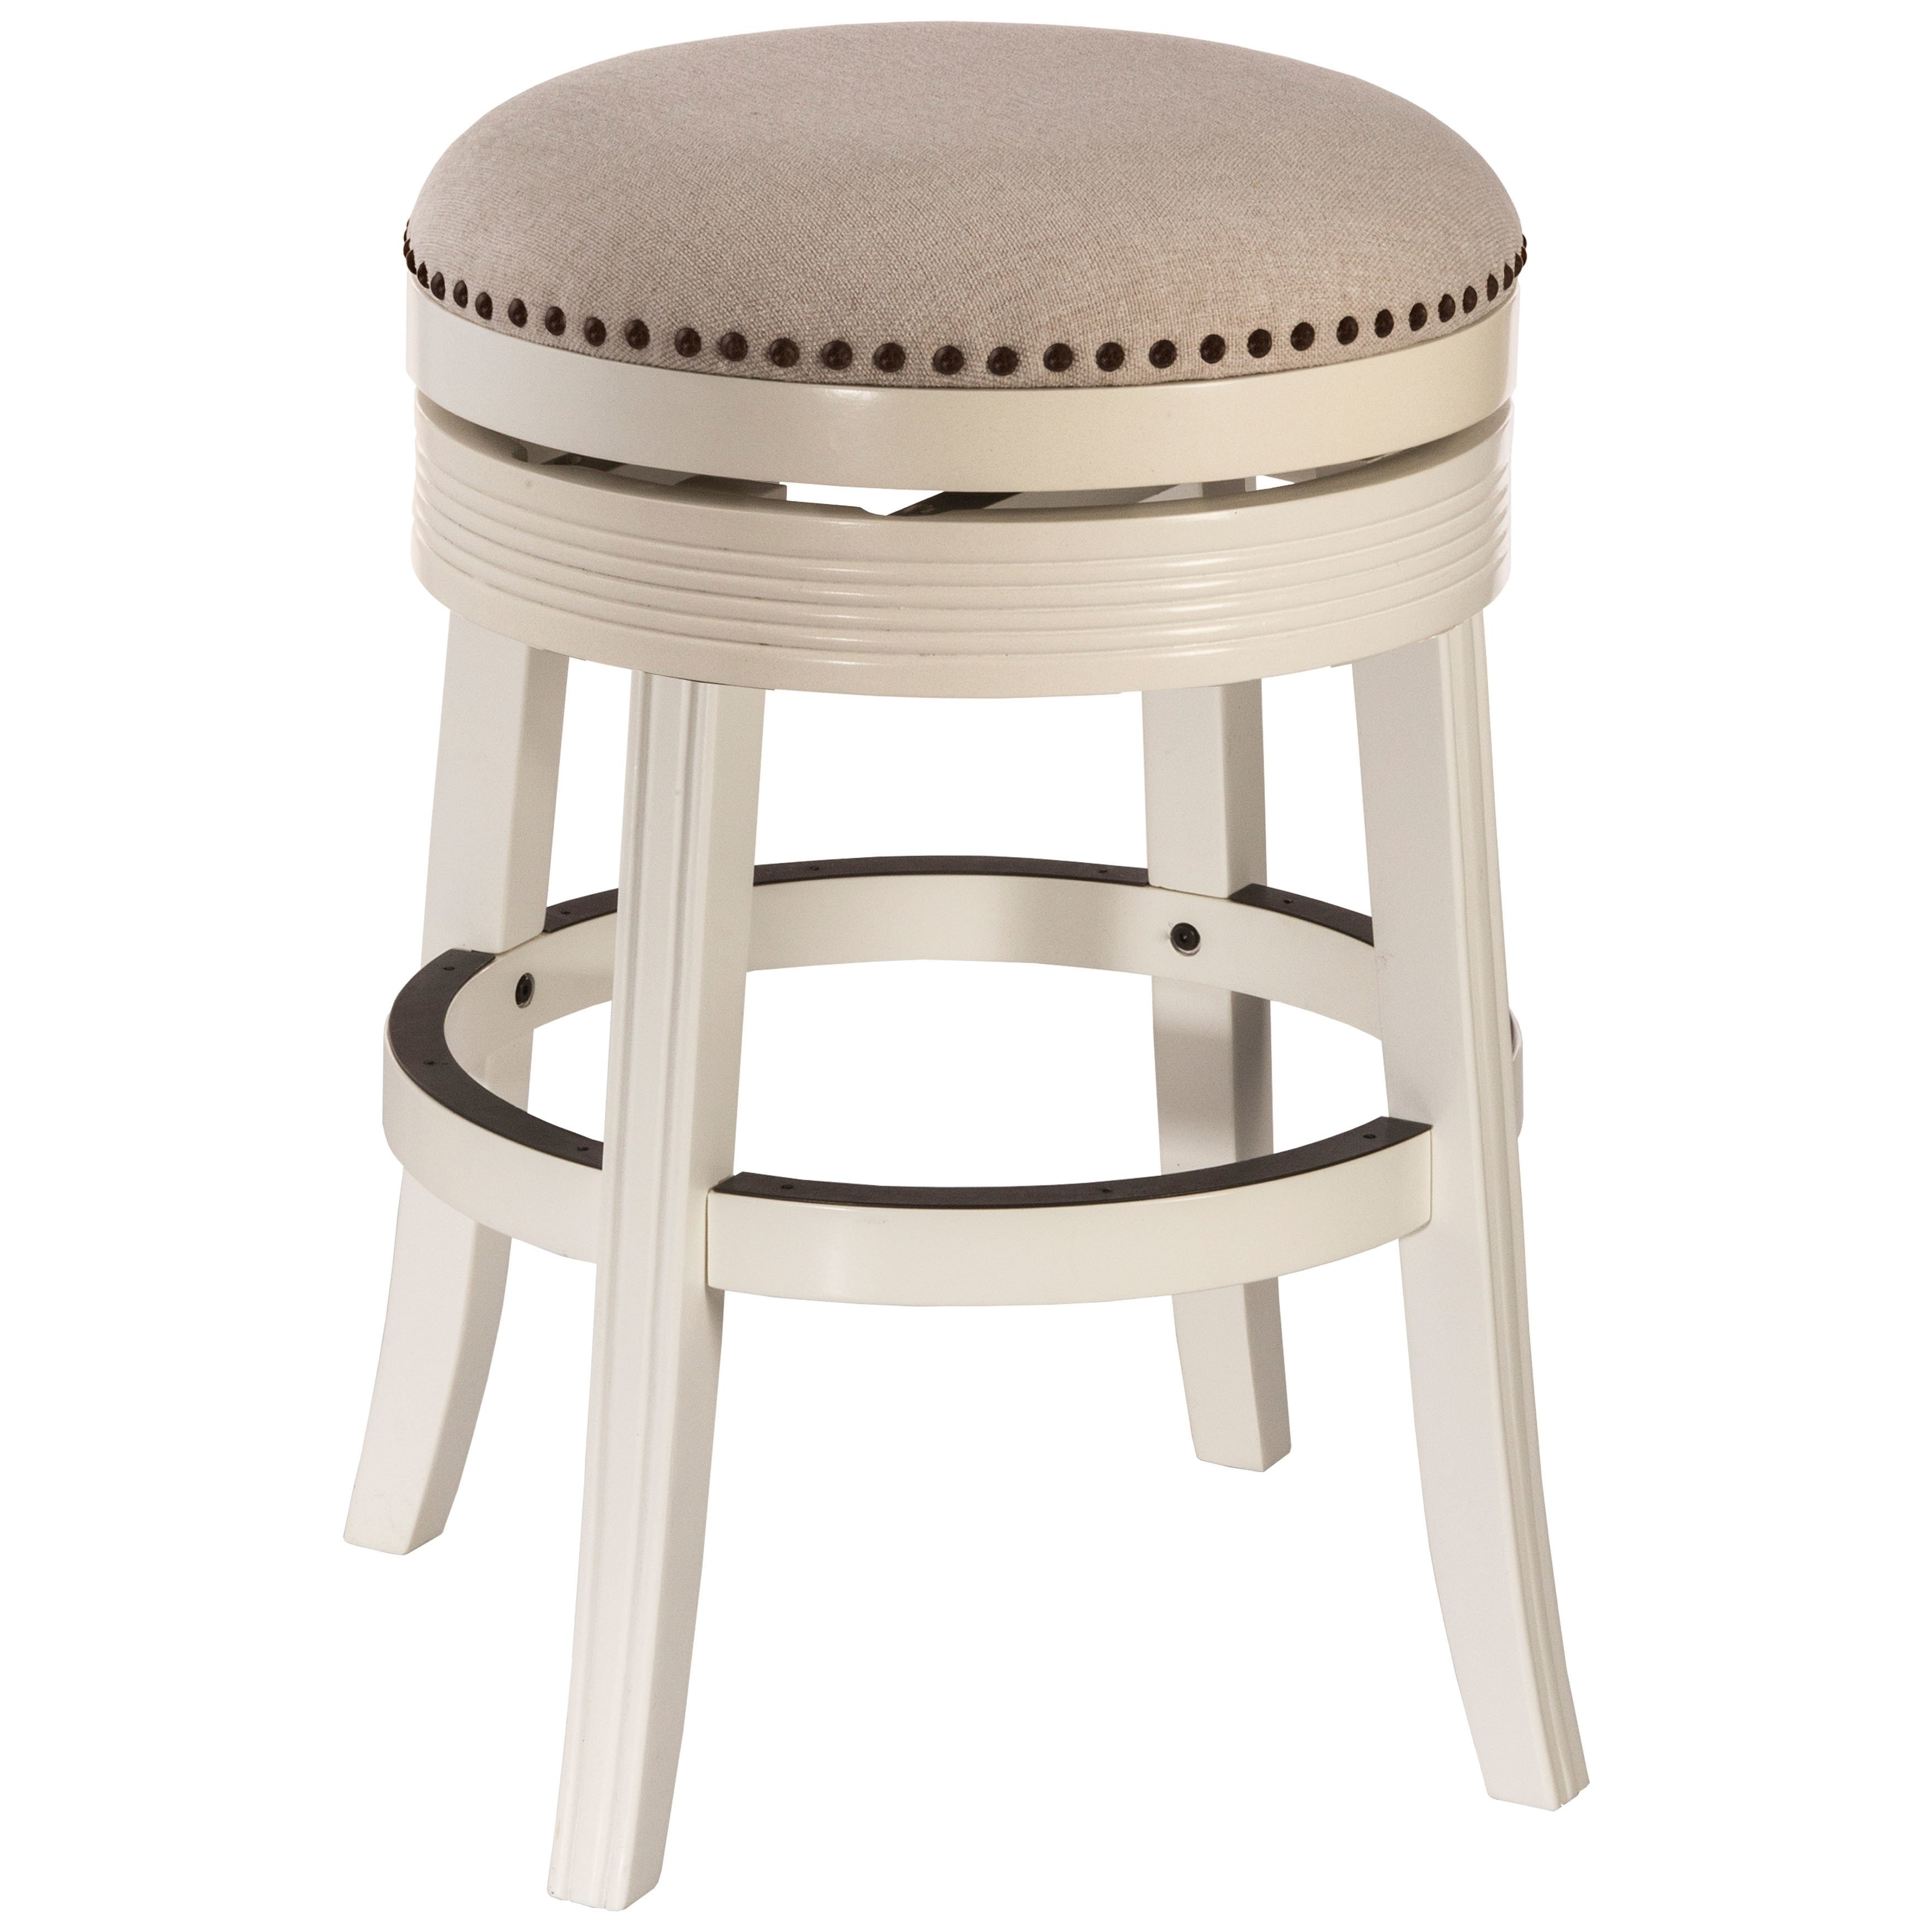 Admirable Copper Grove Curlew White Wood Backless Swivel Counter Stool Unemploymentrelief Wooden Chair Designs For Living Room Unemploymentrelieforg